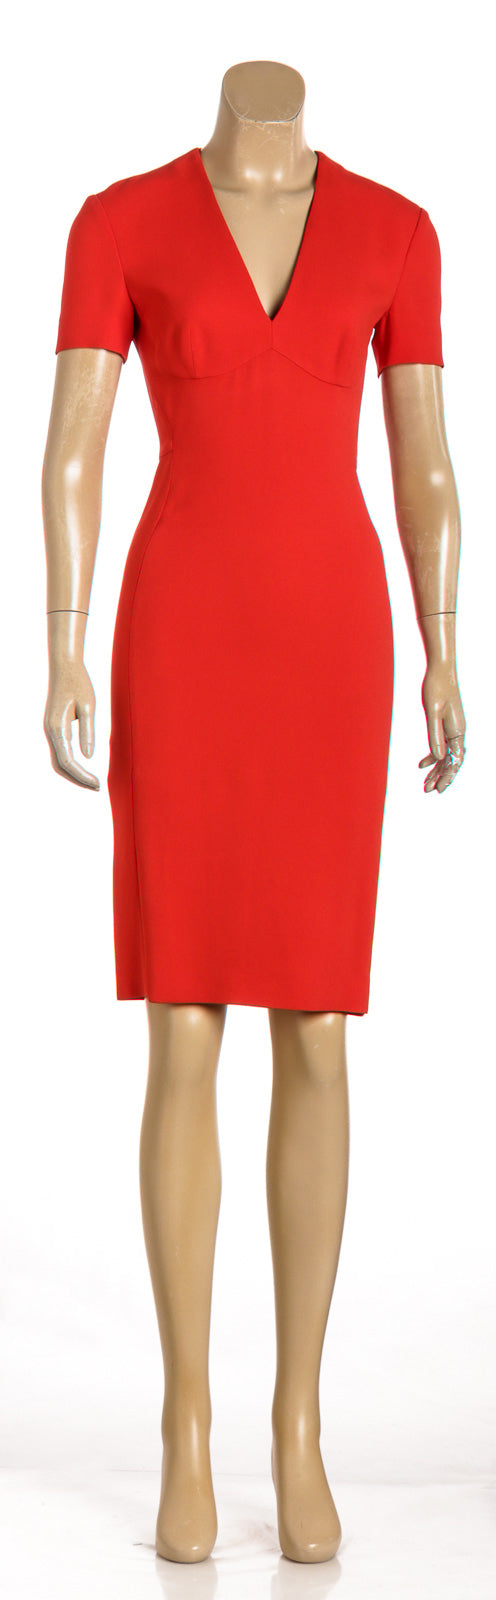 Stella McCartney Orange Crepe Short Sleeve V-Neck Dress (Size 38)